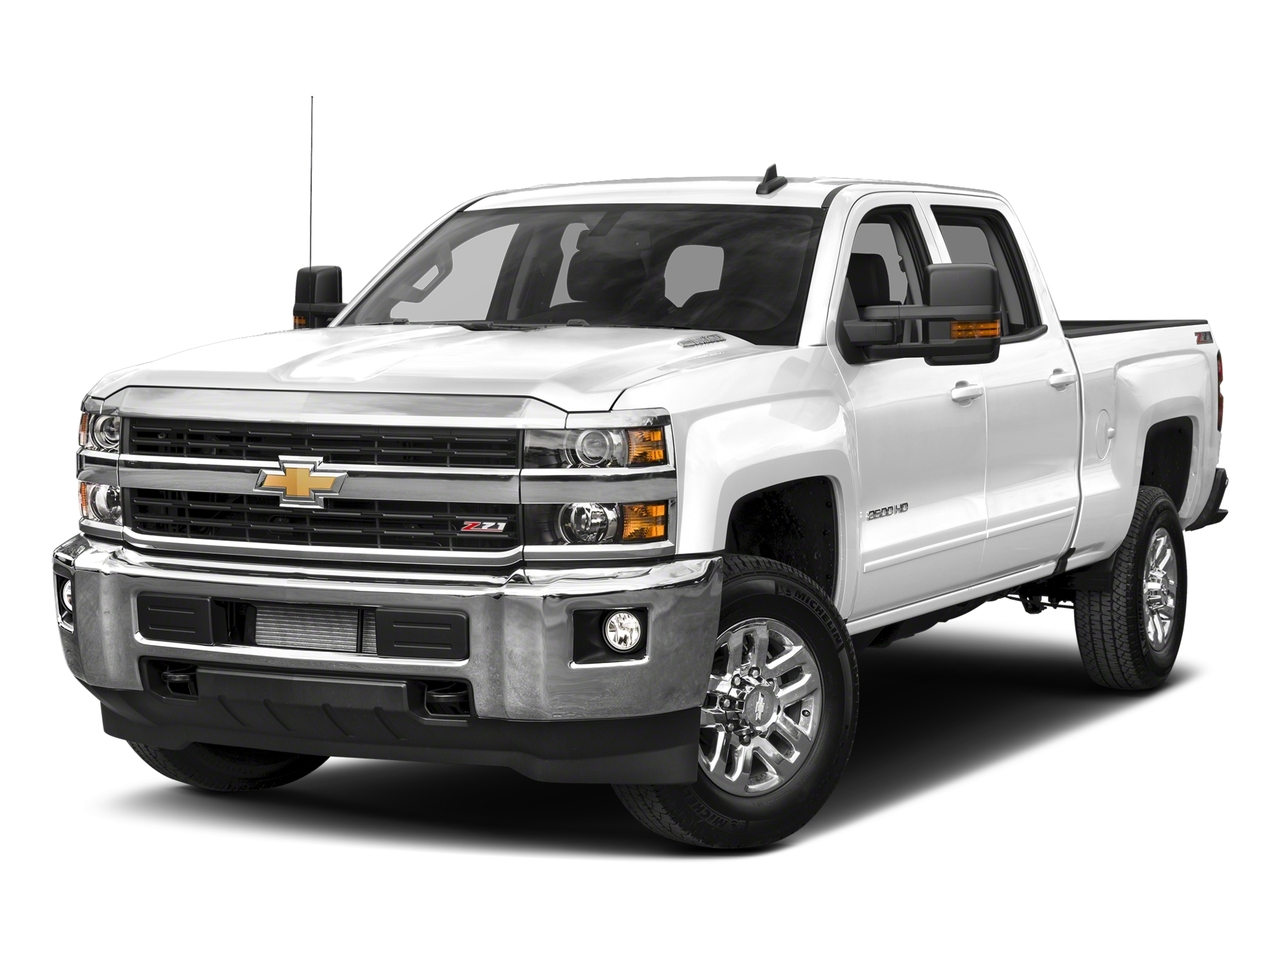 Summit White 2018 Chevrolet Silverado 2500HD LT Crew Cab Pickup Wake Forest NC